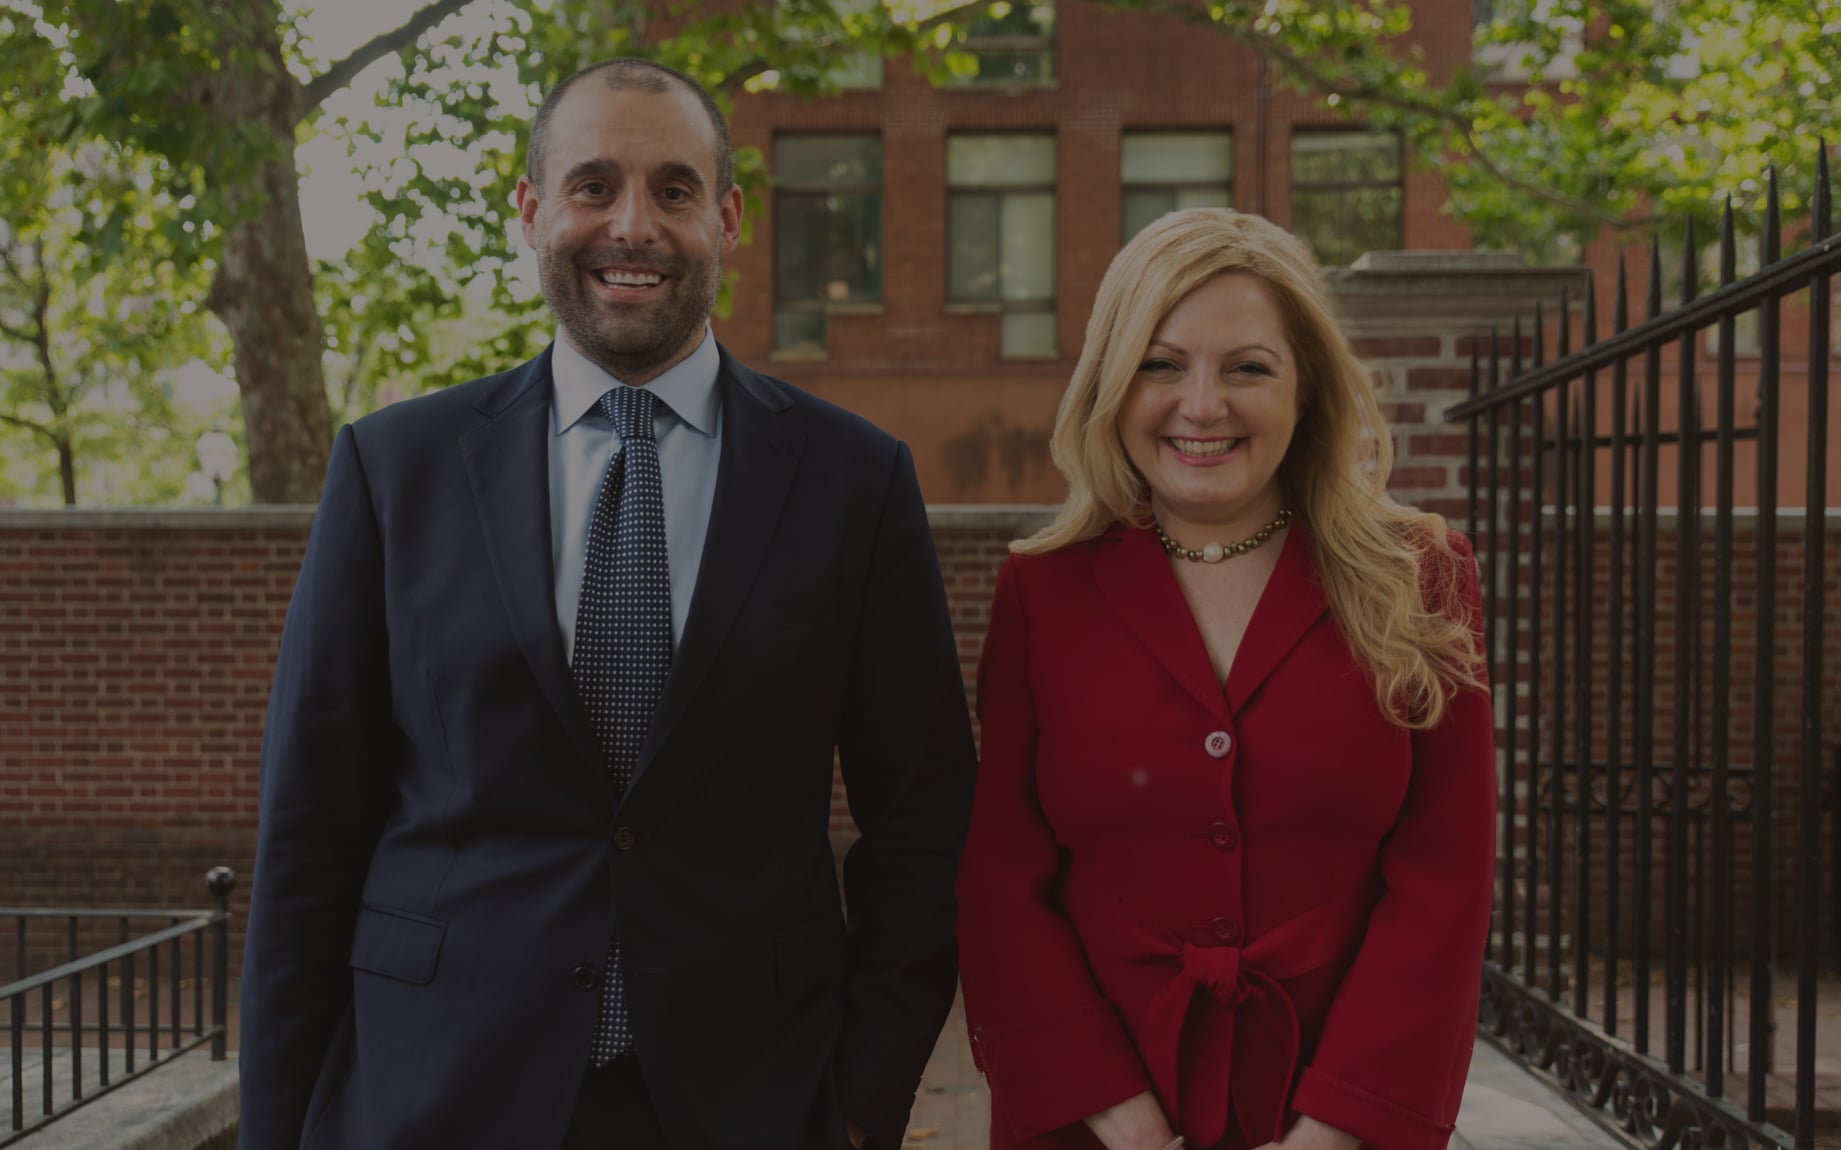 Natalie Klyashtorny and Alan Nochumson Elected as Officers of the Louis D. Brandeis Law Society